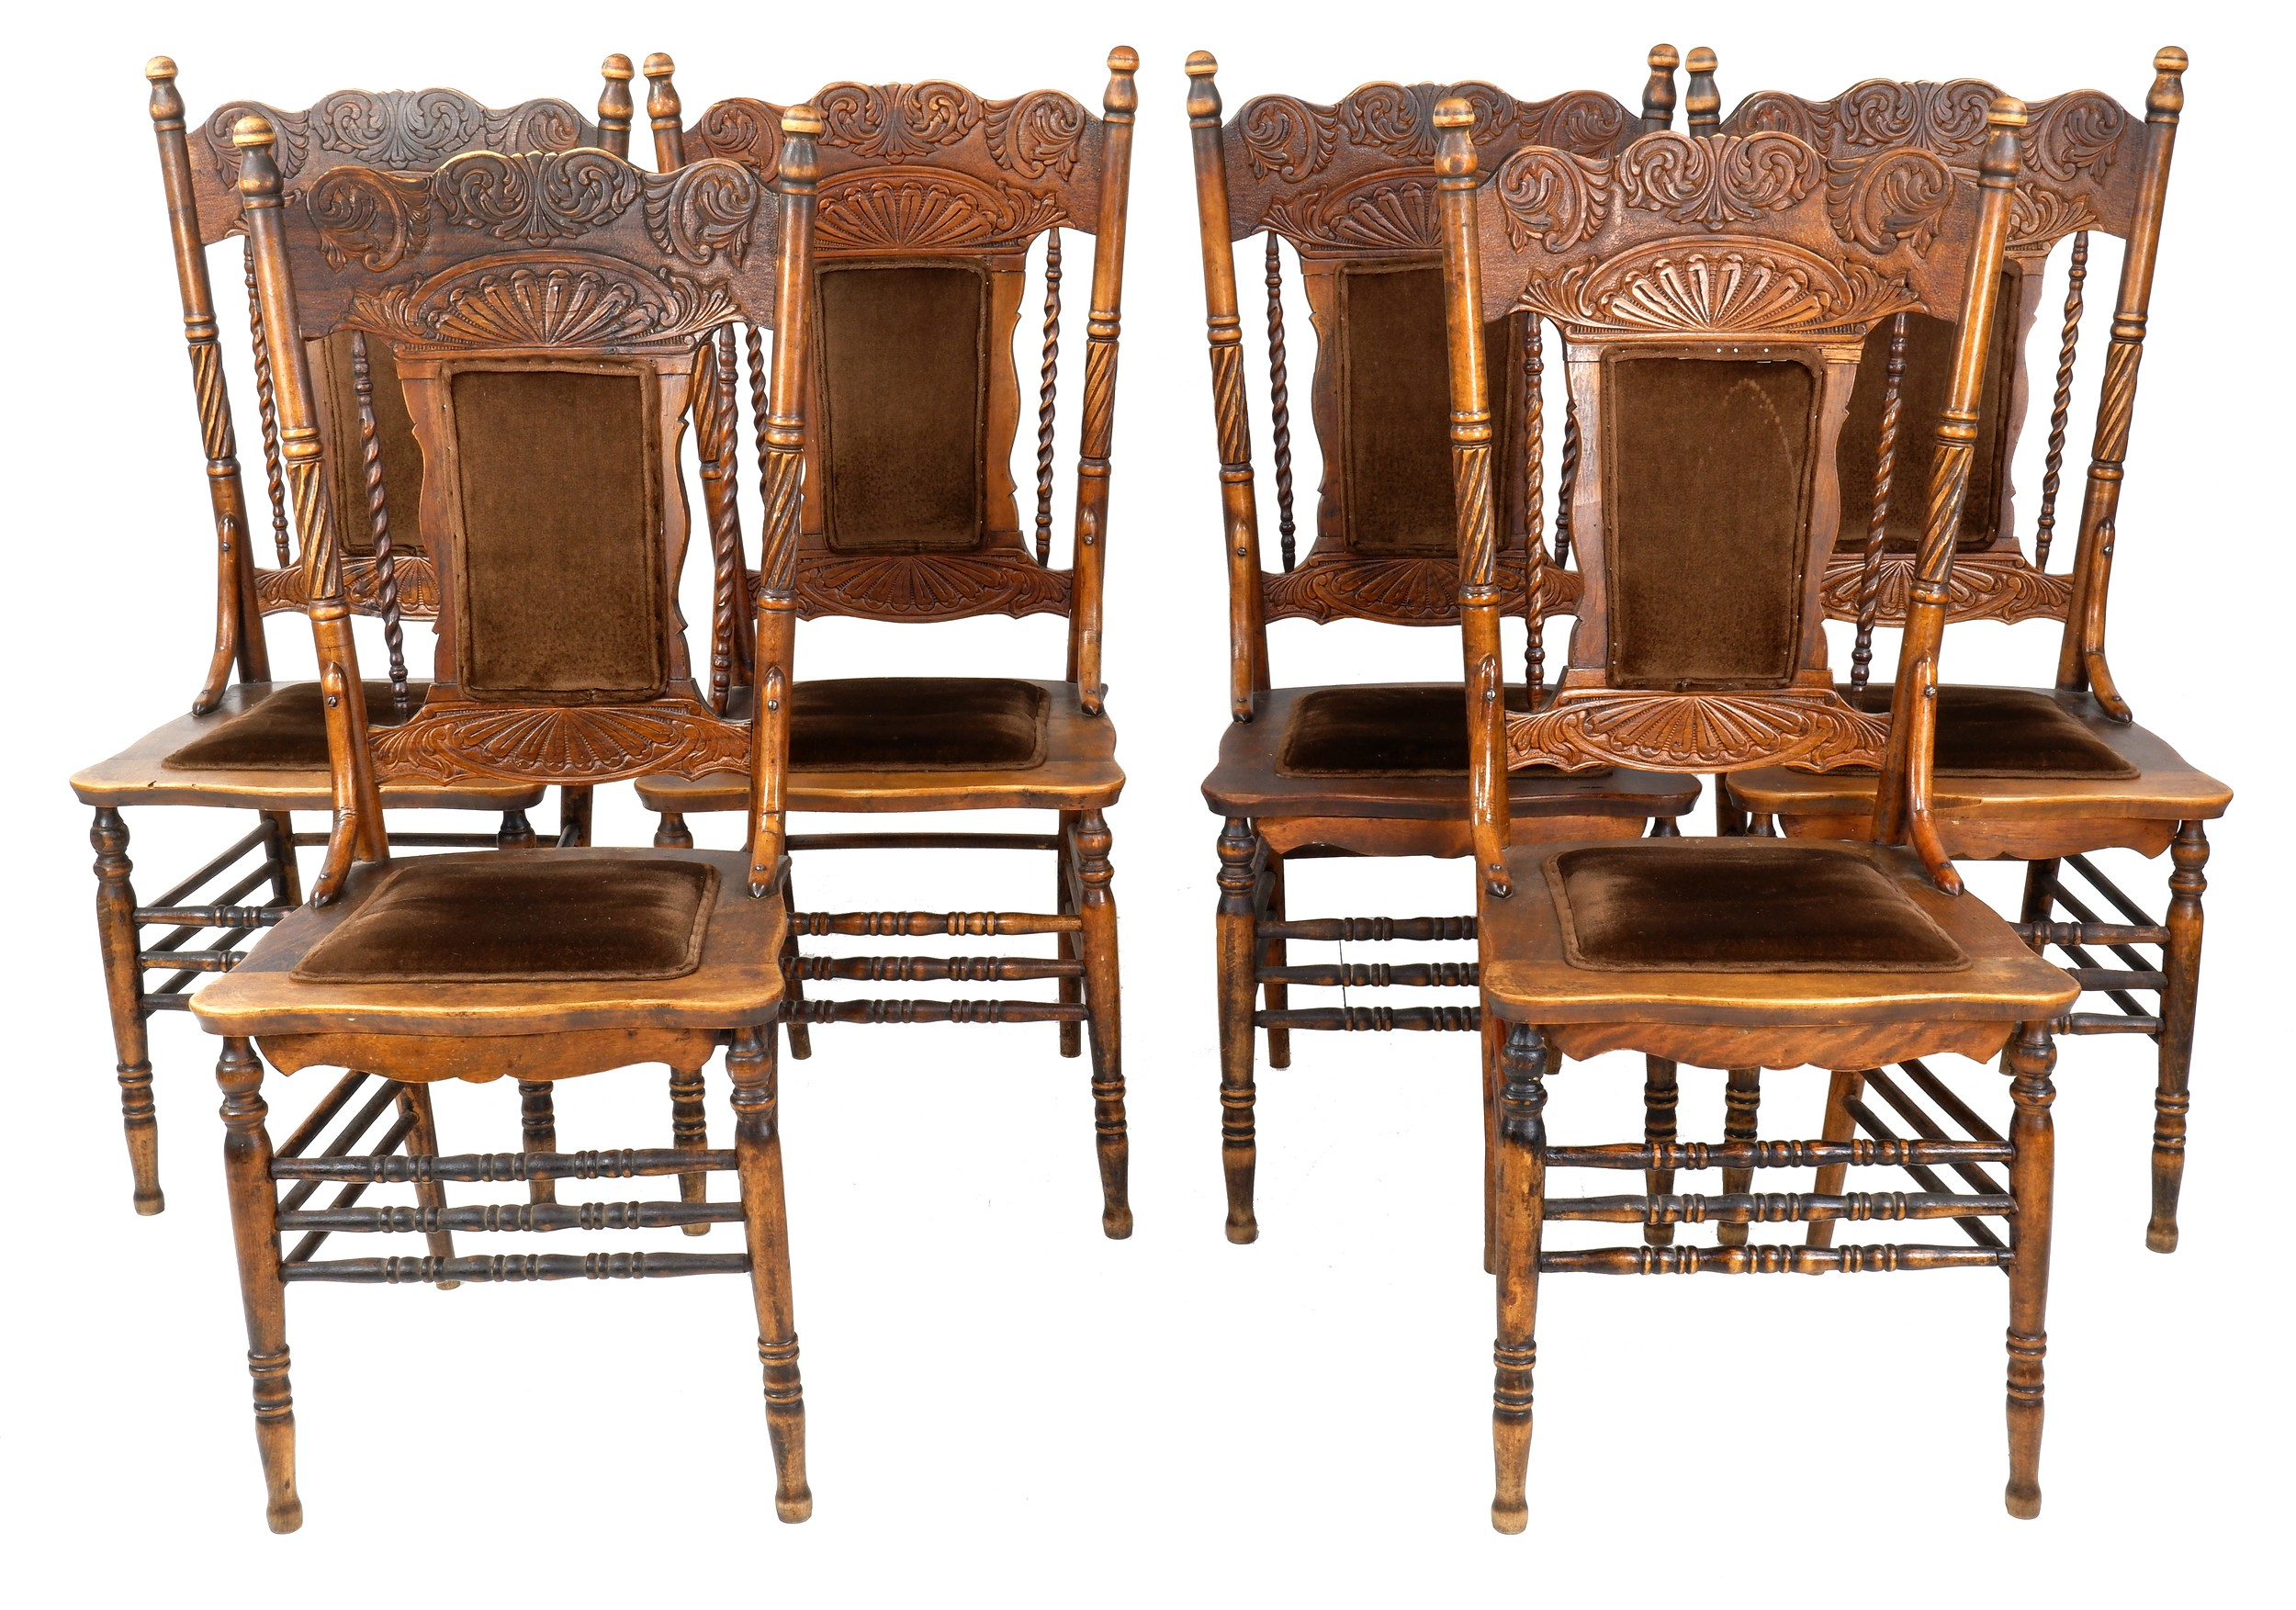 'Six Antique American Oak Pressback Cottage Chairs with Fine Barley Turned Spindles Circa 1900'